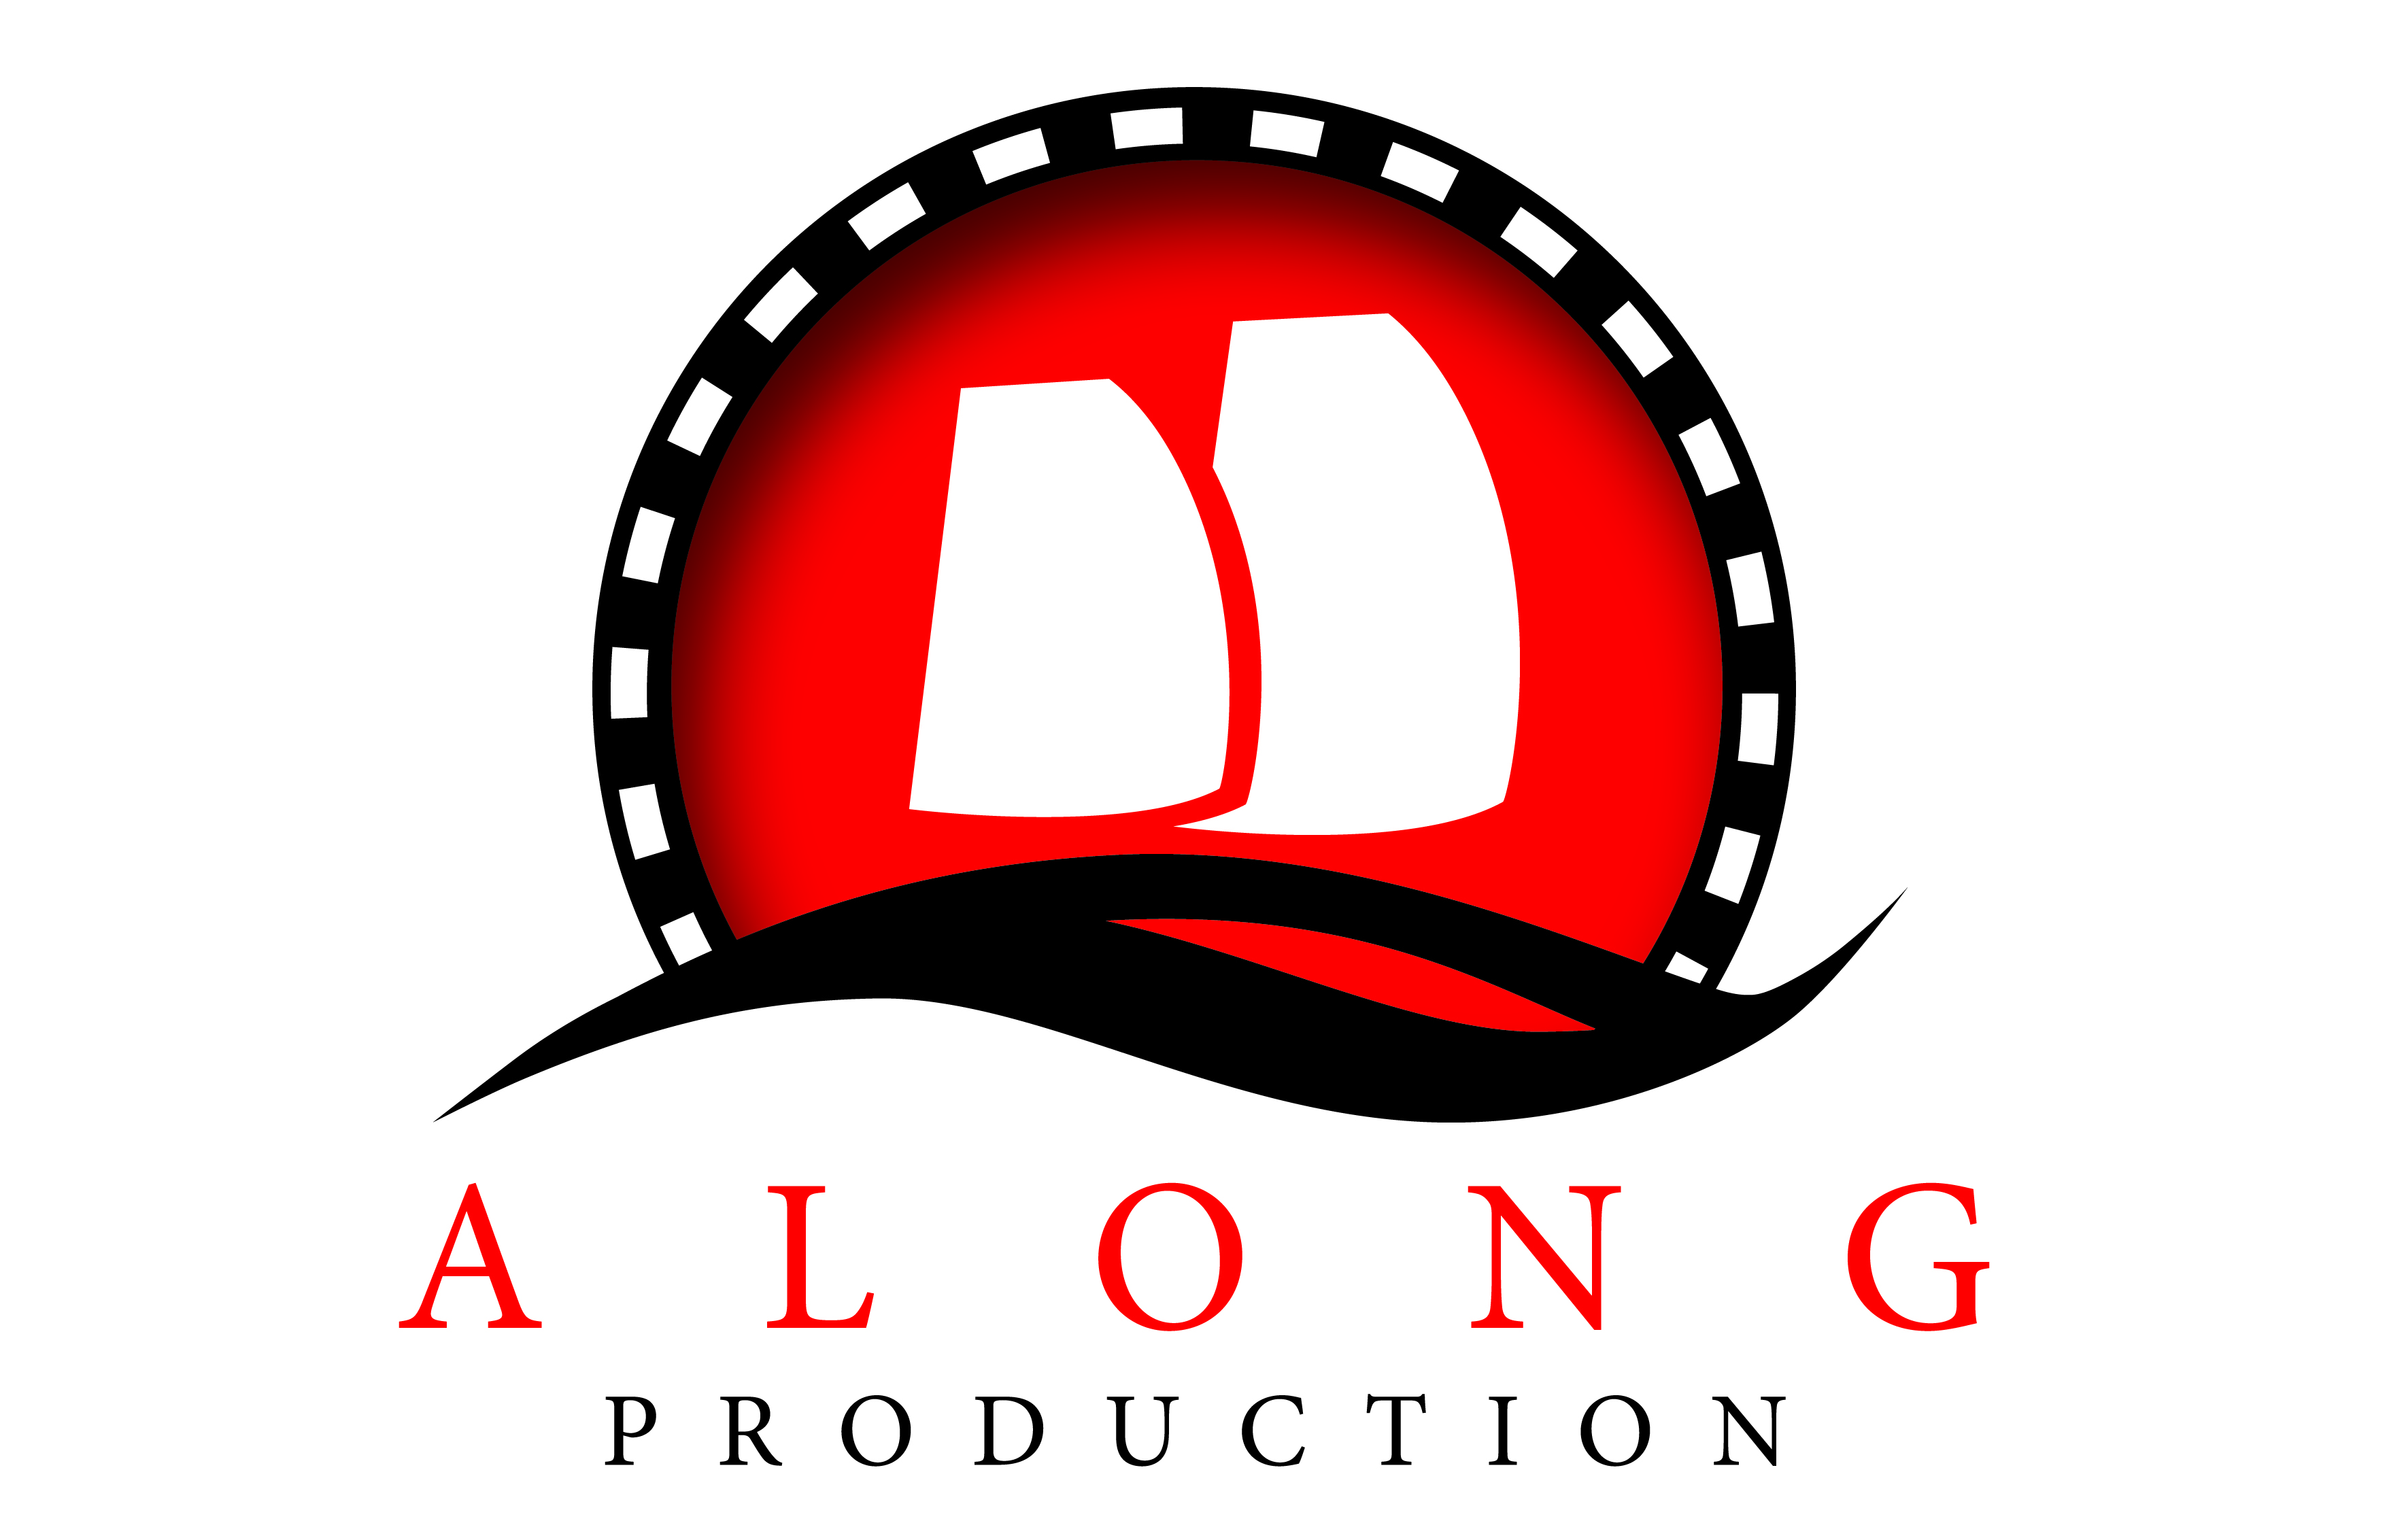 ALong-production